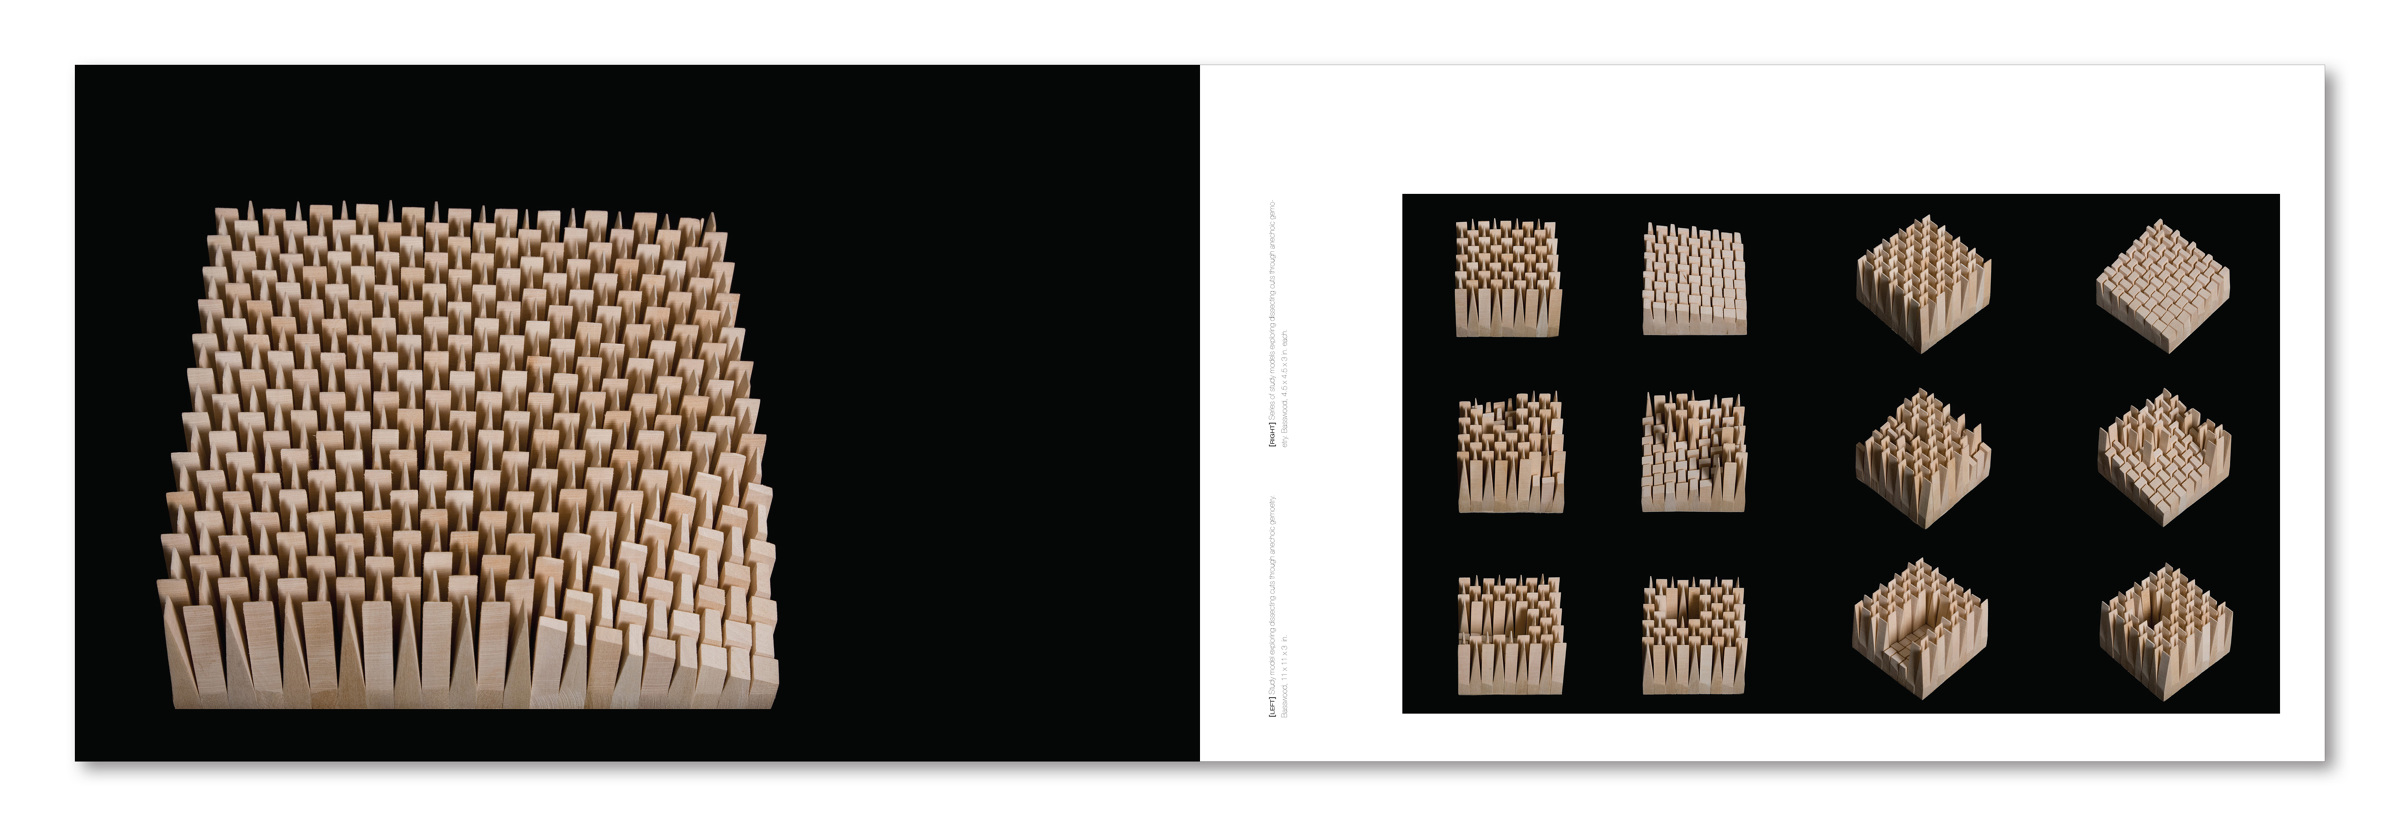 Worksamples - Laura Haak Architecture